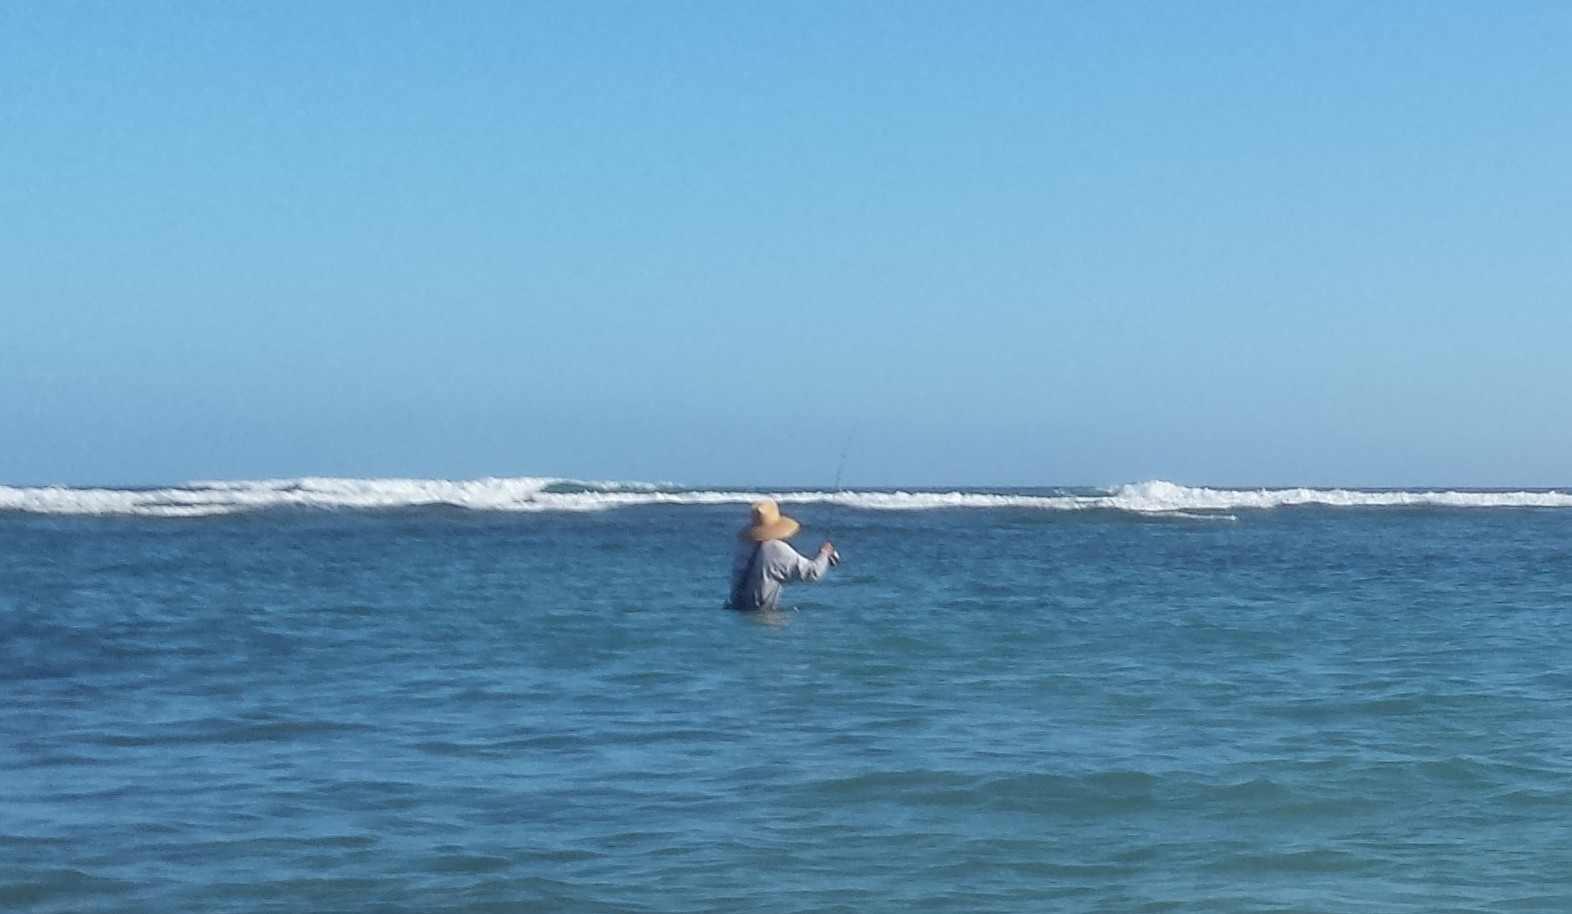 South shore oahu archives hawaii nearshore fishing for Hawaii tides for fishing